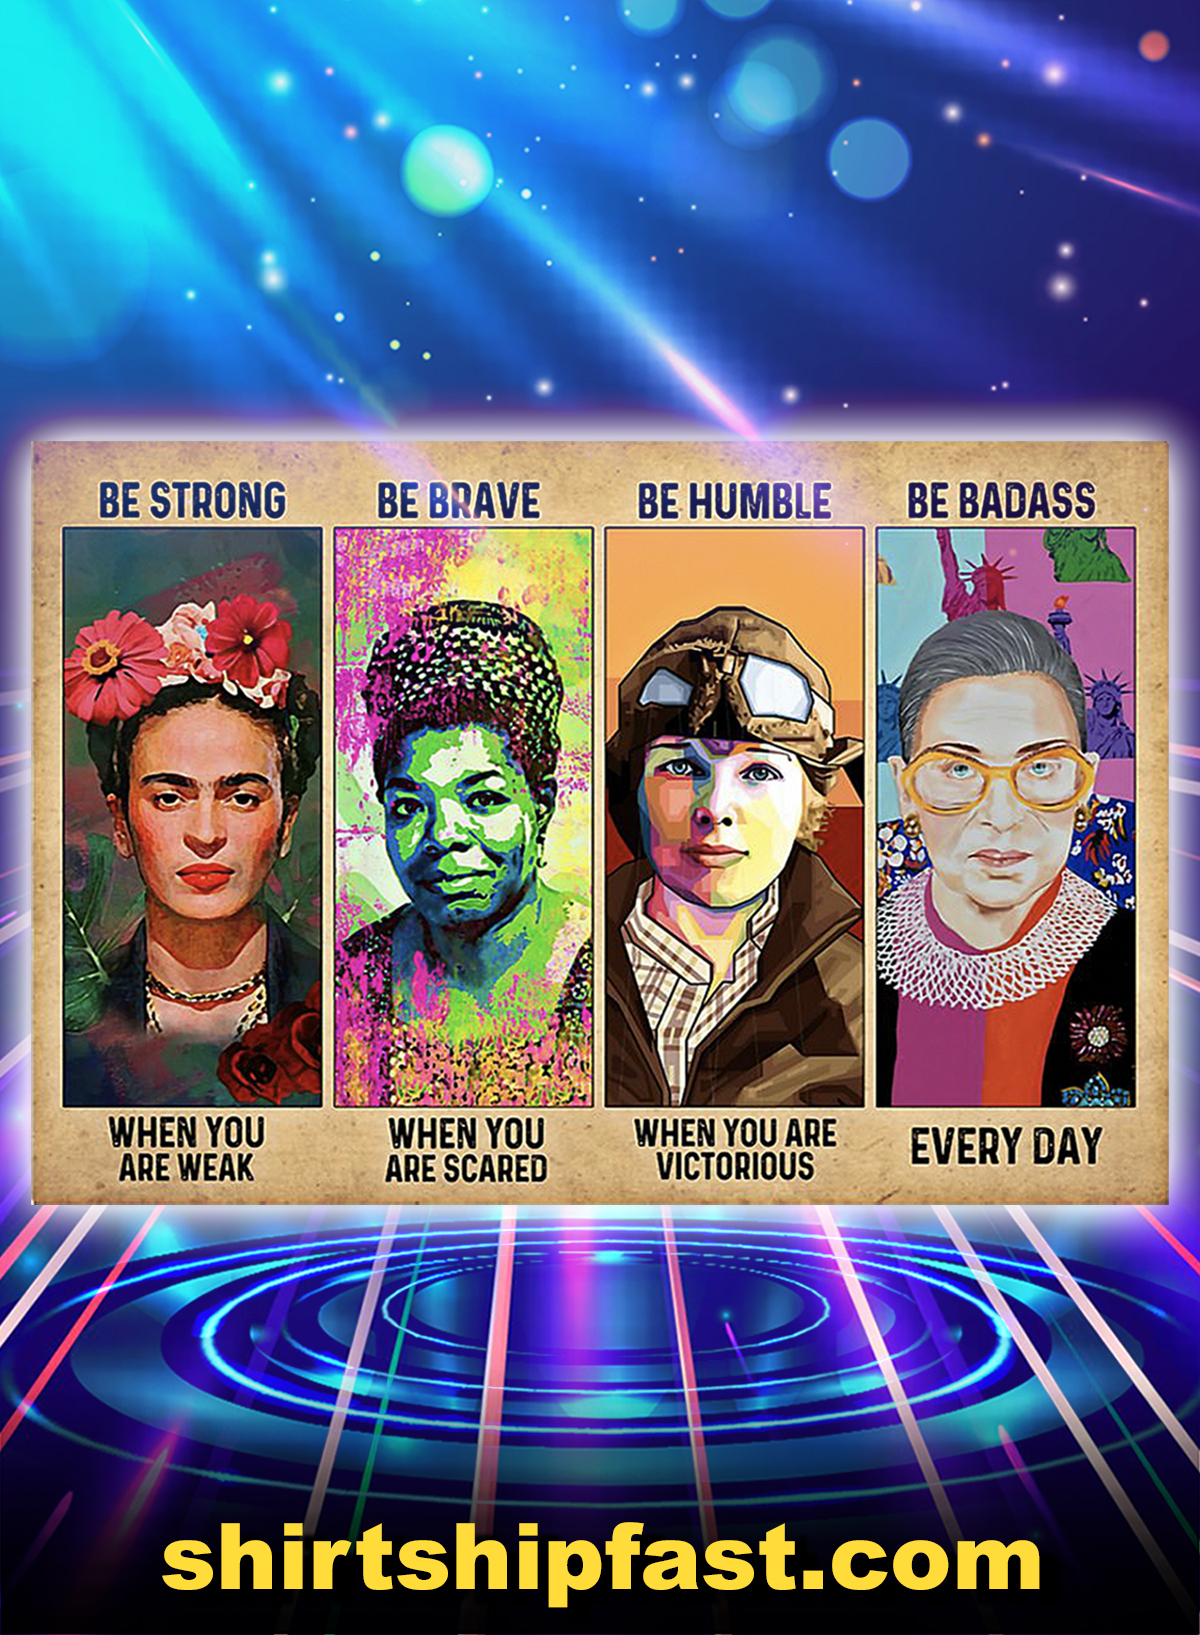 Feminist RBG Frida Kahlo be strong be brave be humble be badass poster - A1